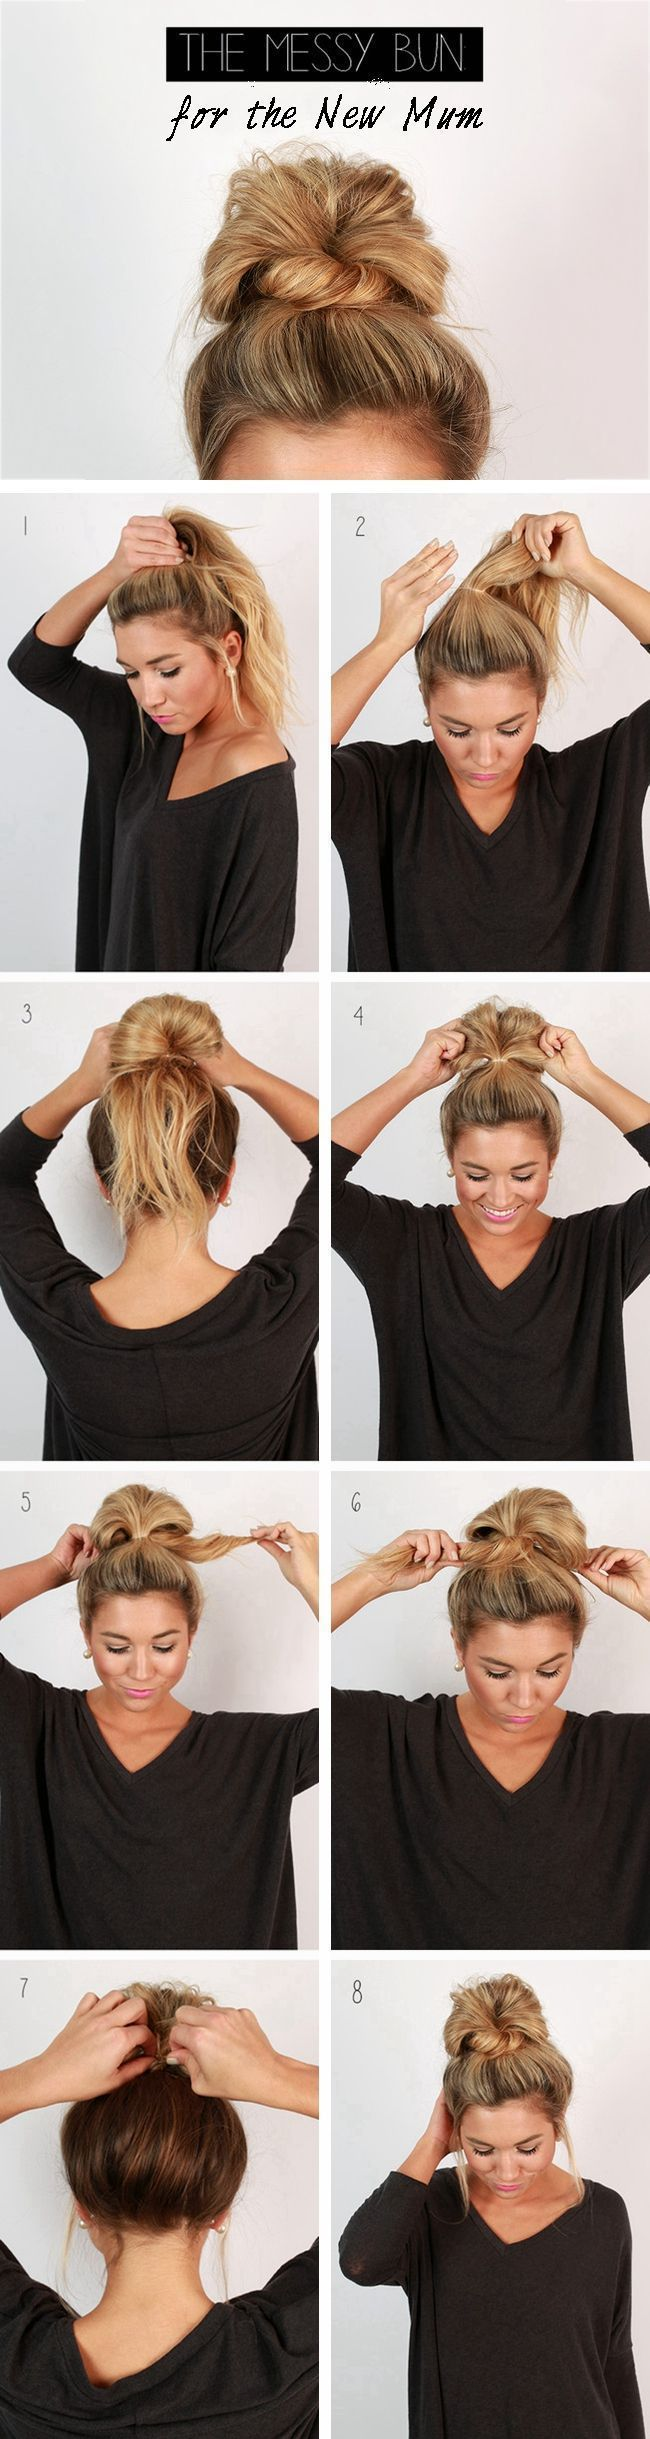 Marvelous 25 Best Ideas About Easy Updo On Pinterest Easy Chignon Simple Hairstyles For Men Maxibearus